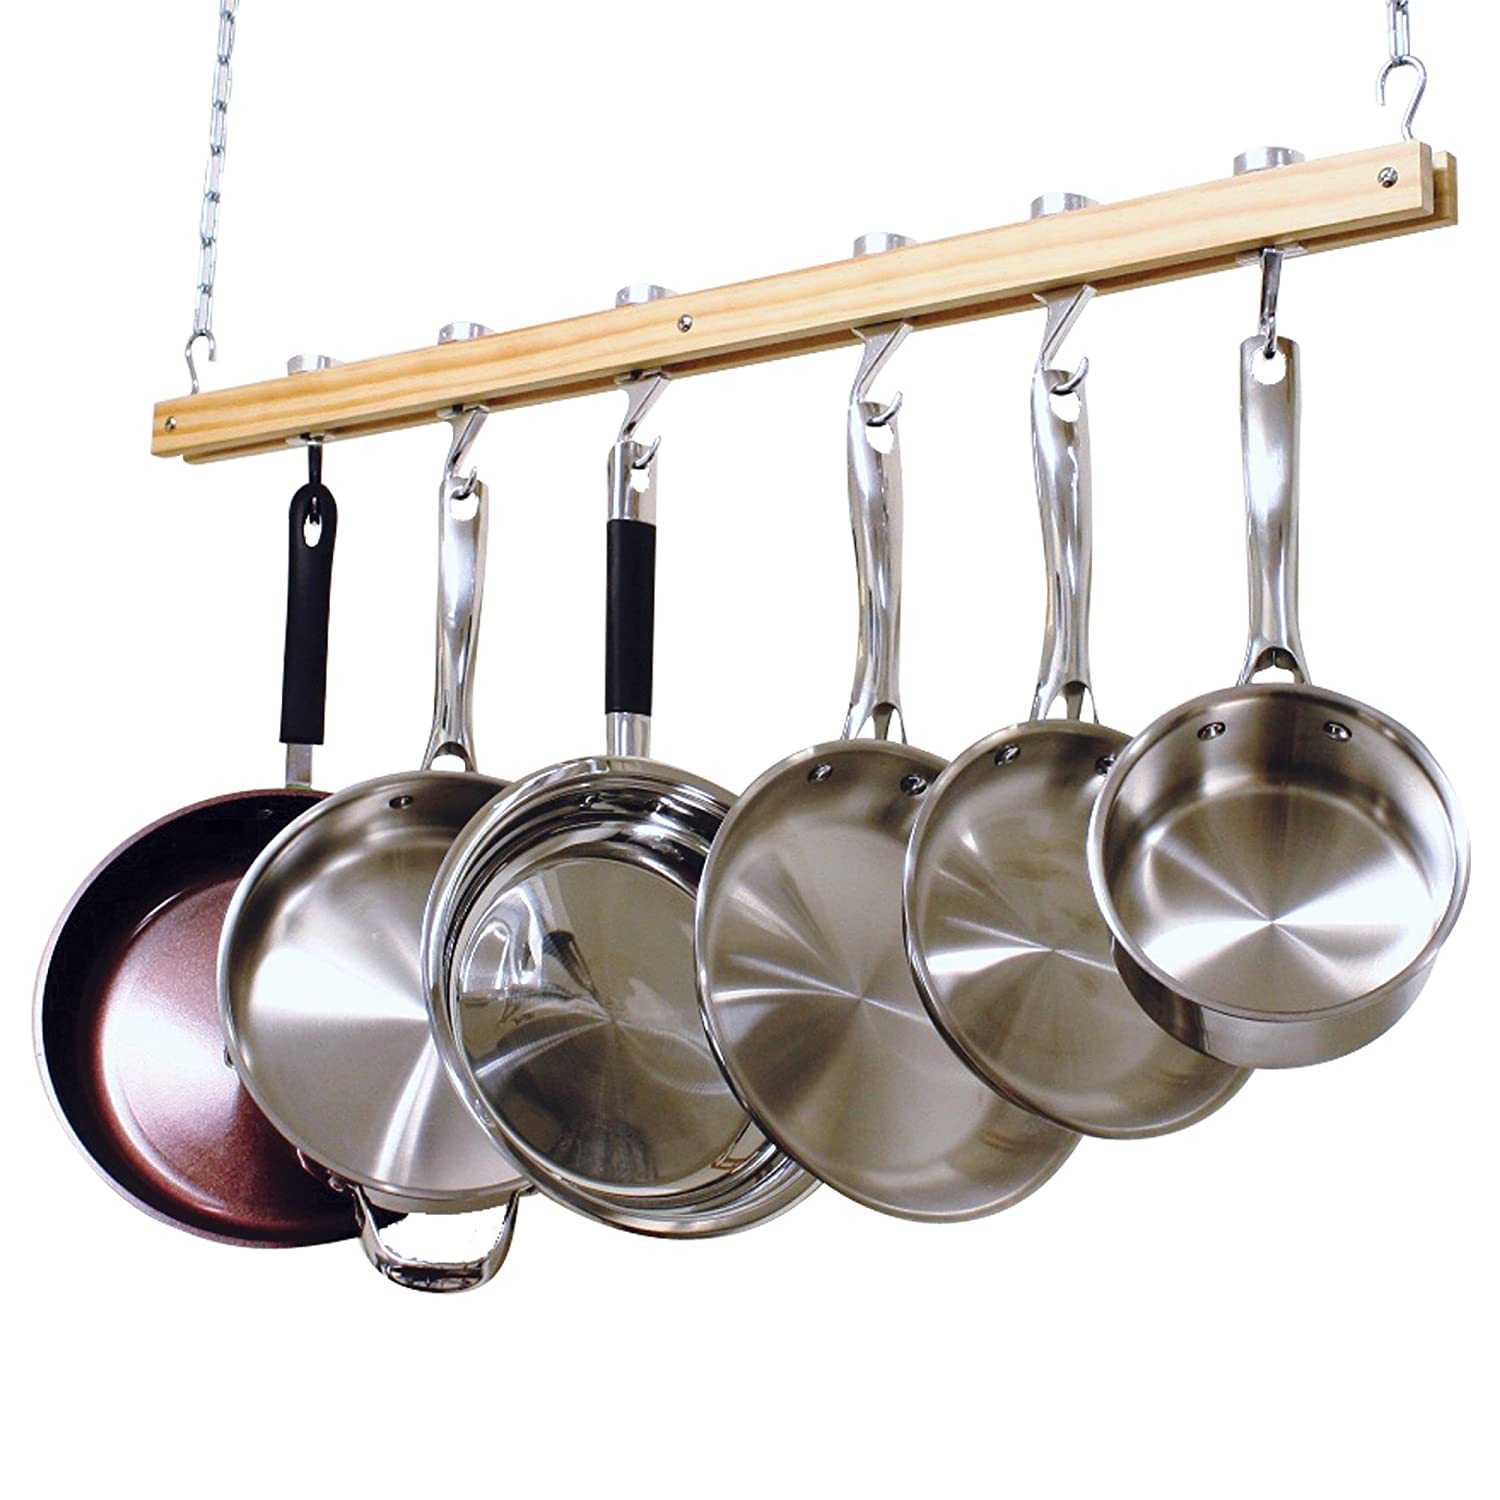 Good Cooks Standard Ceiling Mount Wooden Pot Rack, Single Bar